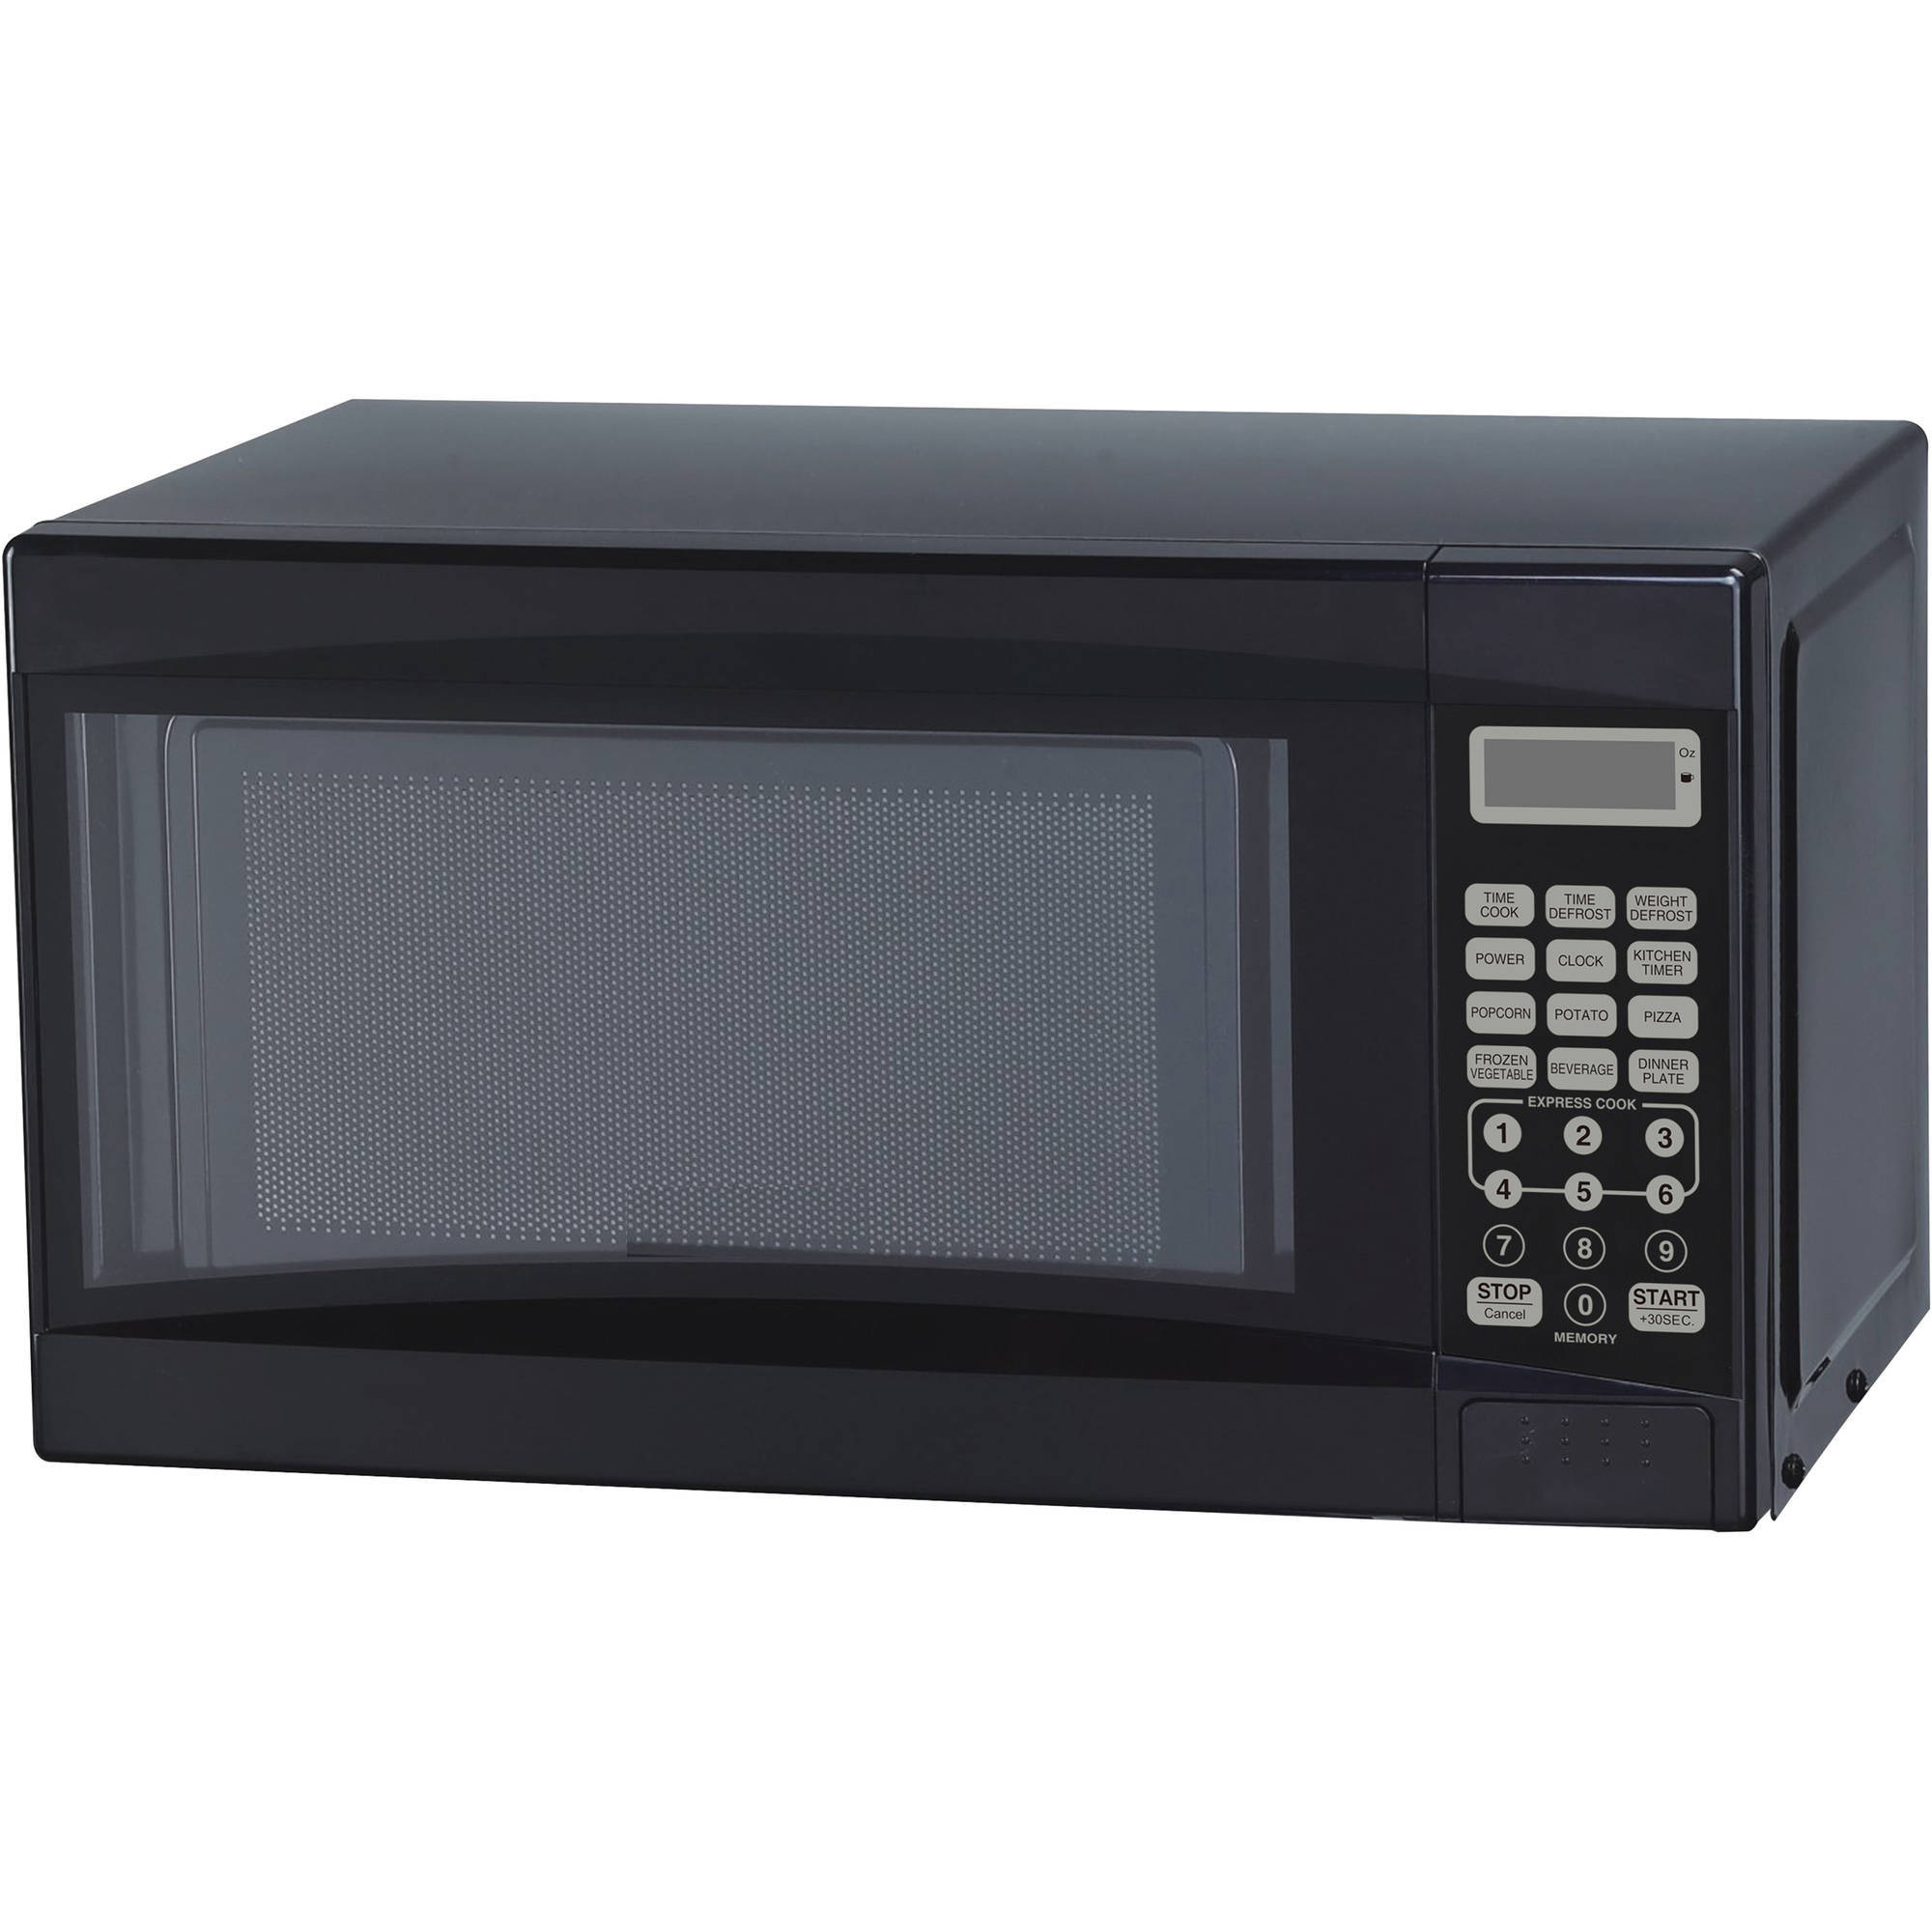 General Electric 1 4 Cu  Ft  Countertop Microwave Oven